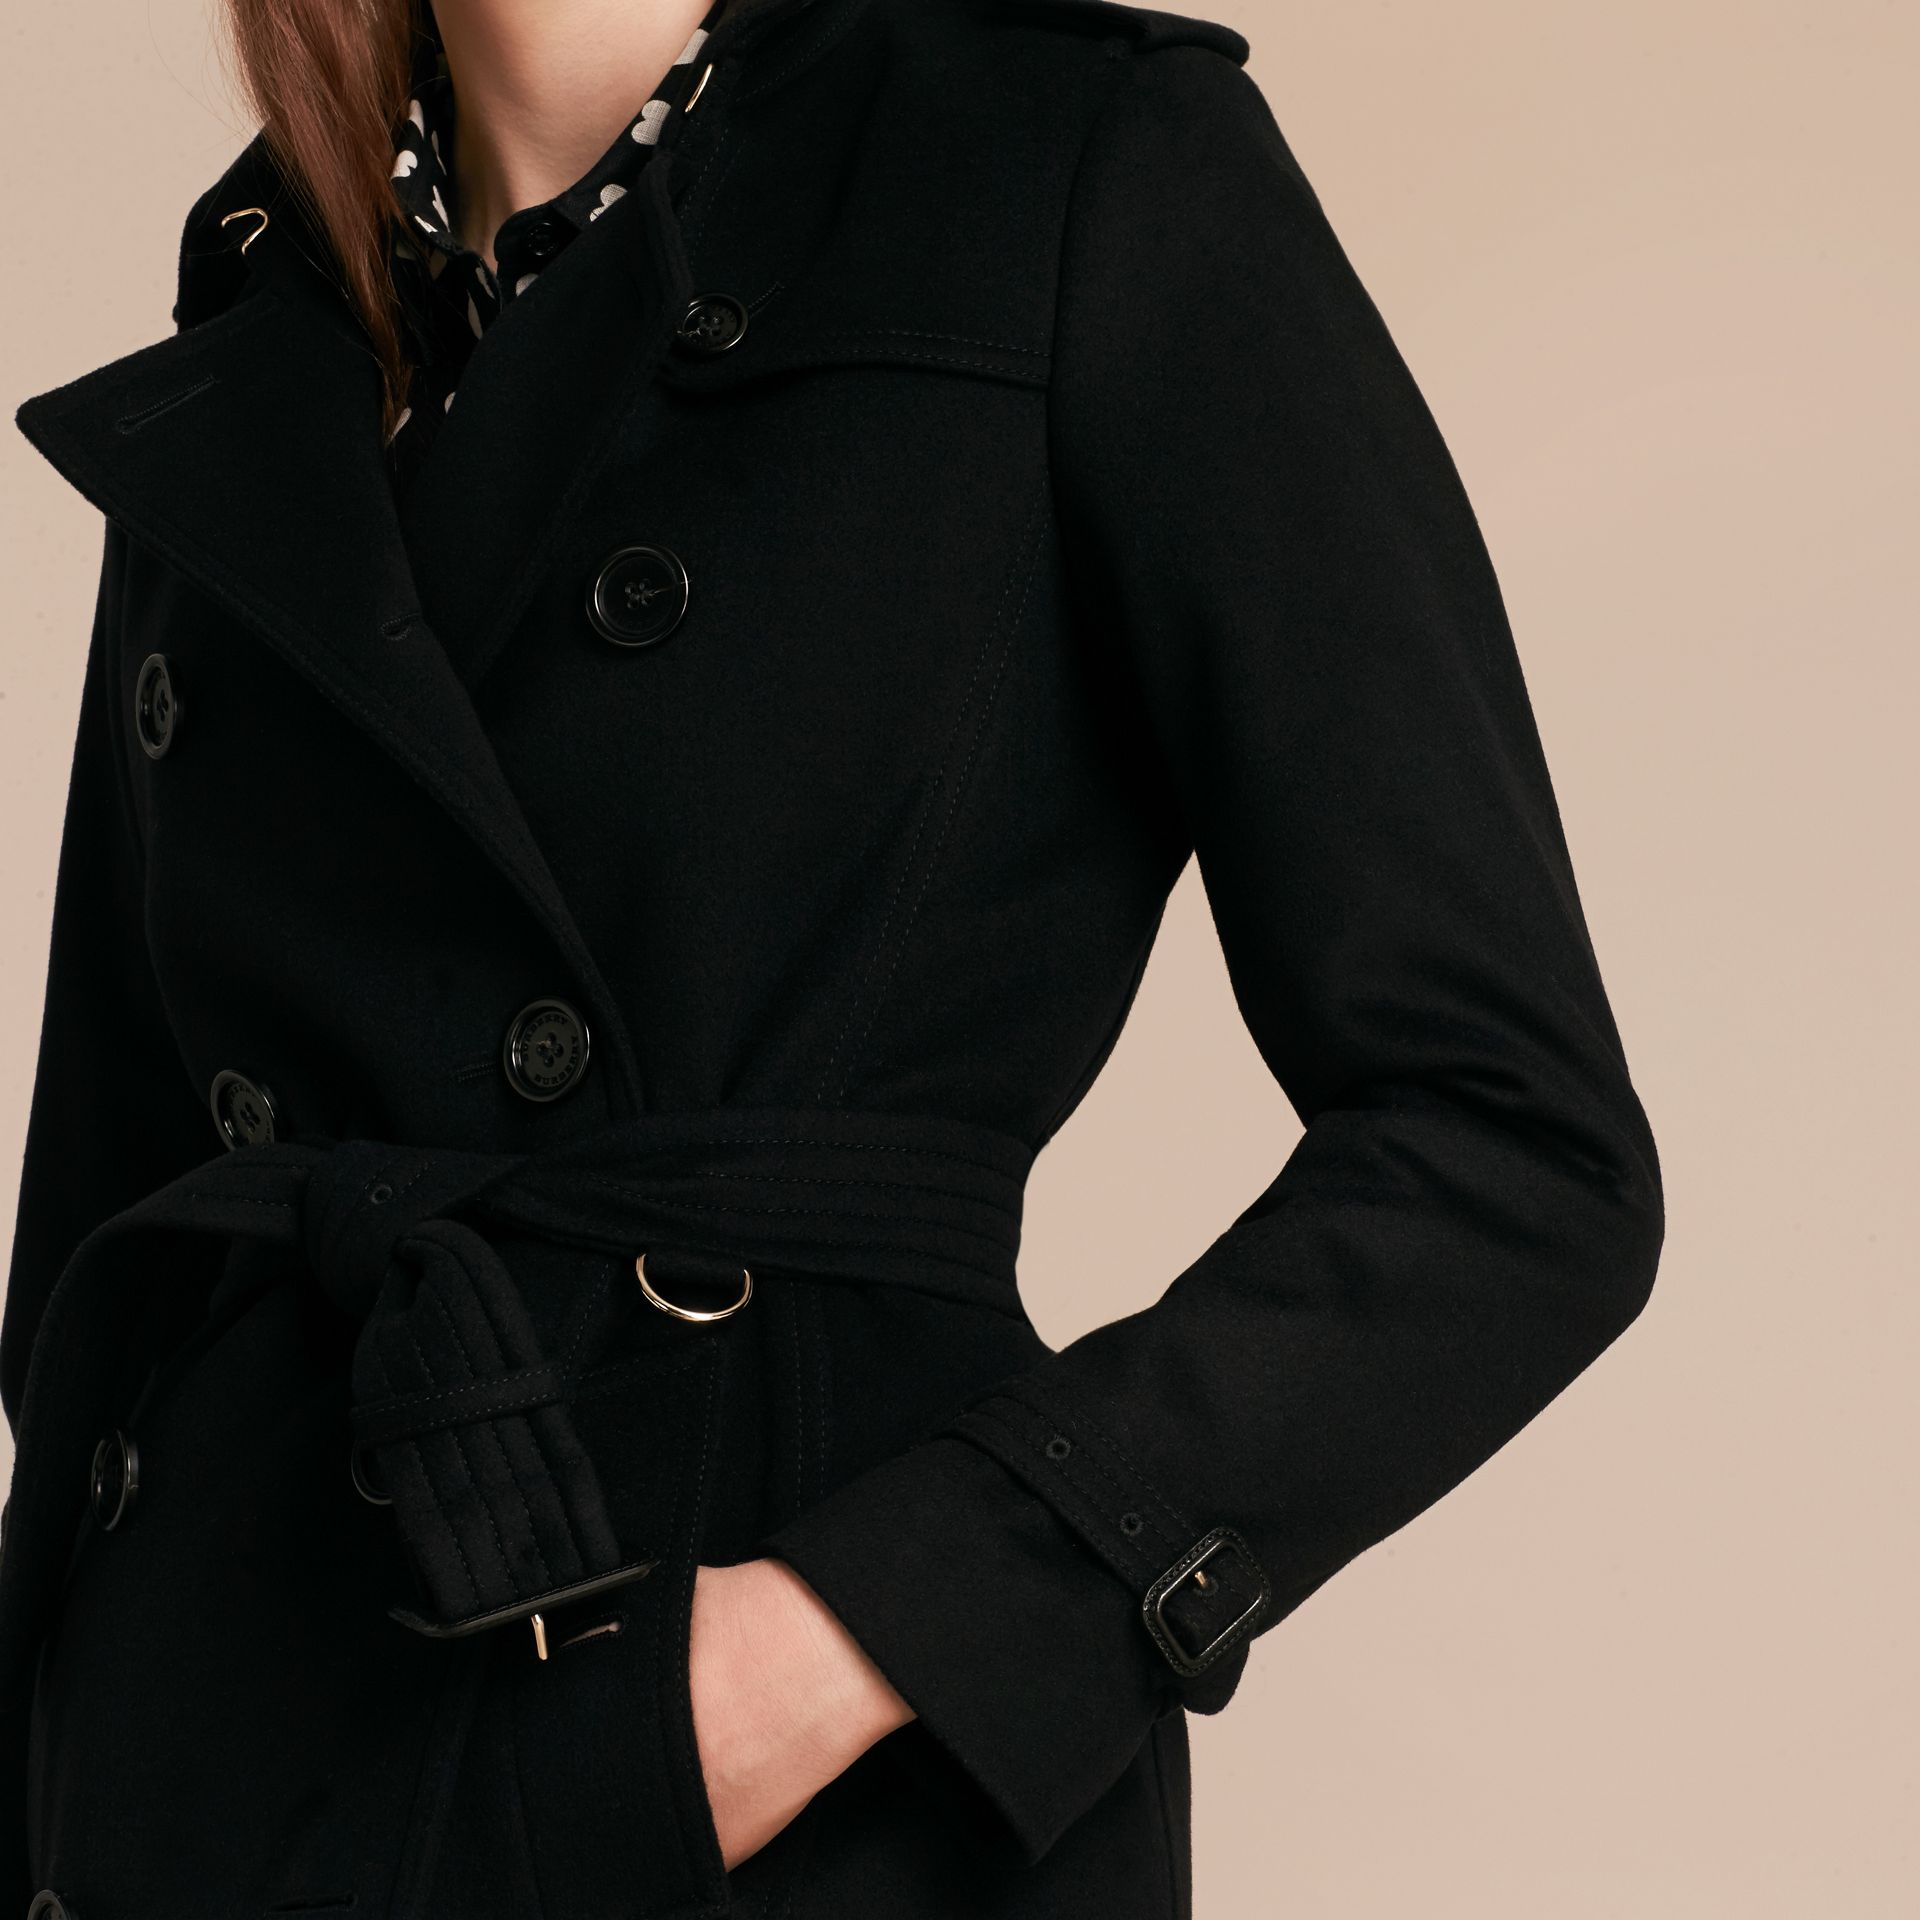 Black Wool Cashmere Trench Coat Black - gallery image 6